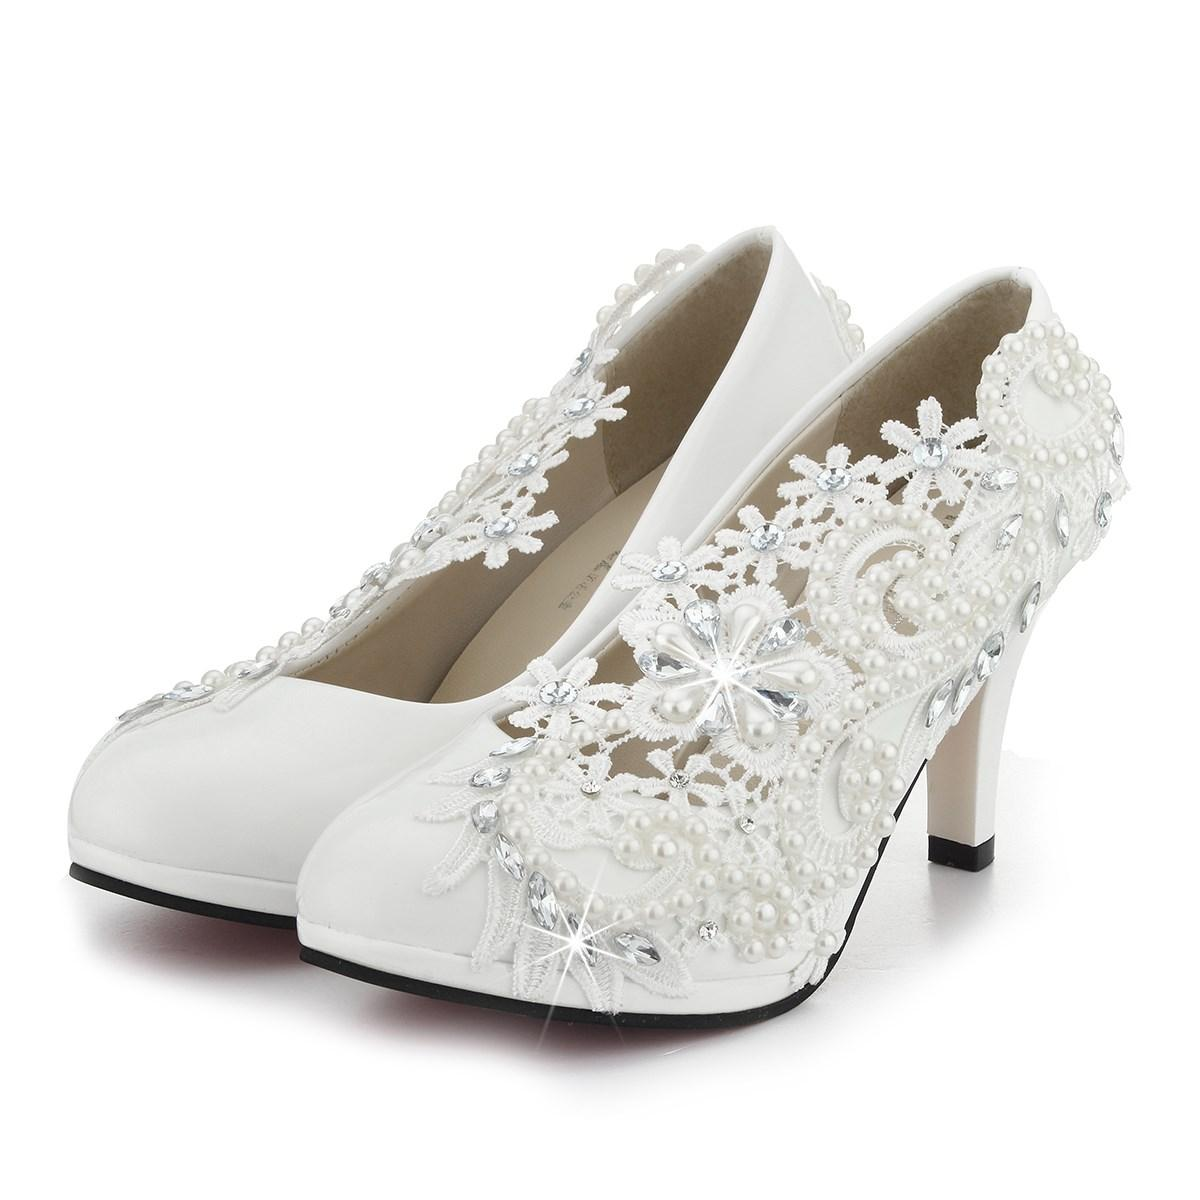 272482a7c89 Pumps Handmade Lace Pearl Wedding Shoes Rhinestones White Bridal Shoes  Bridesmaid Banquet Dress Women 8cm High Heel Pumps Black Flats Blue Heels  From ...